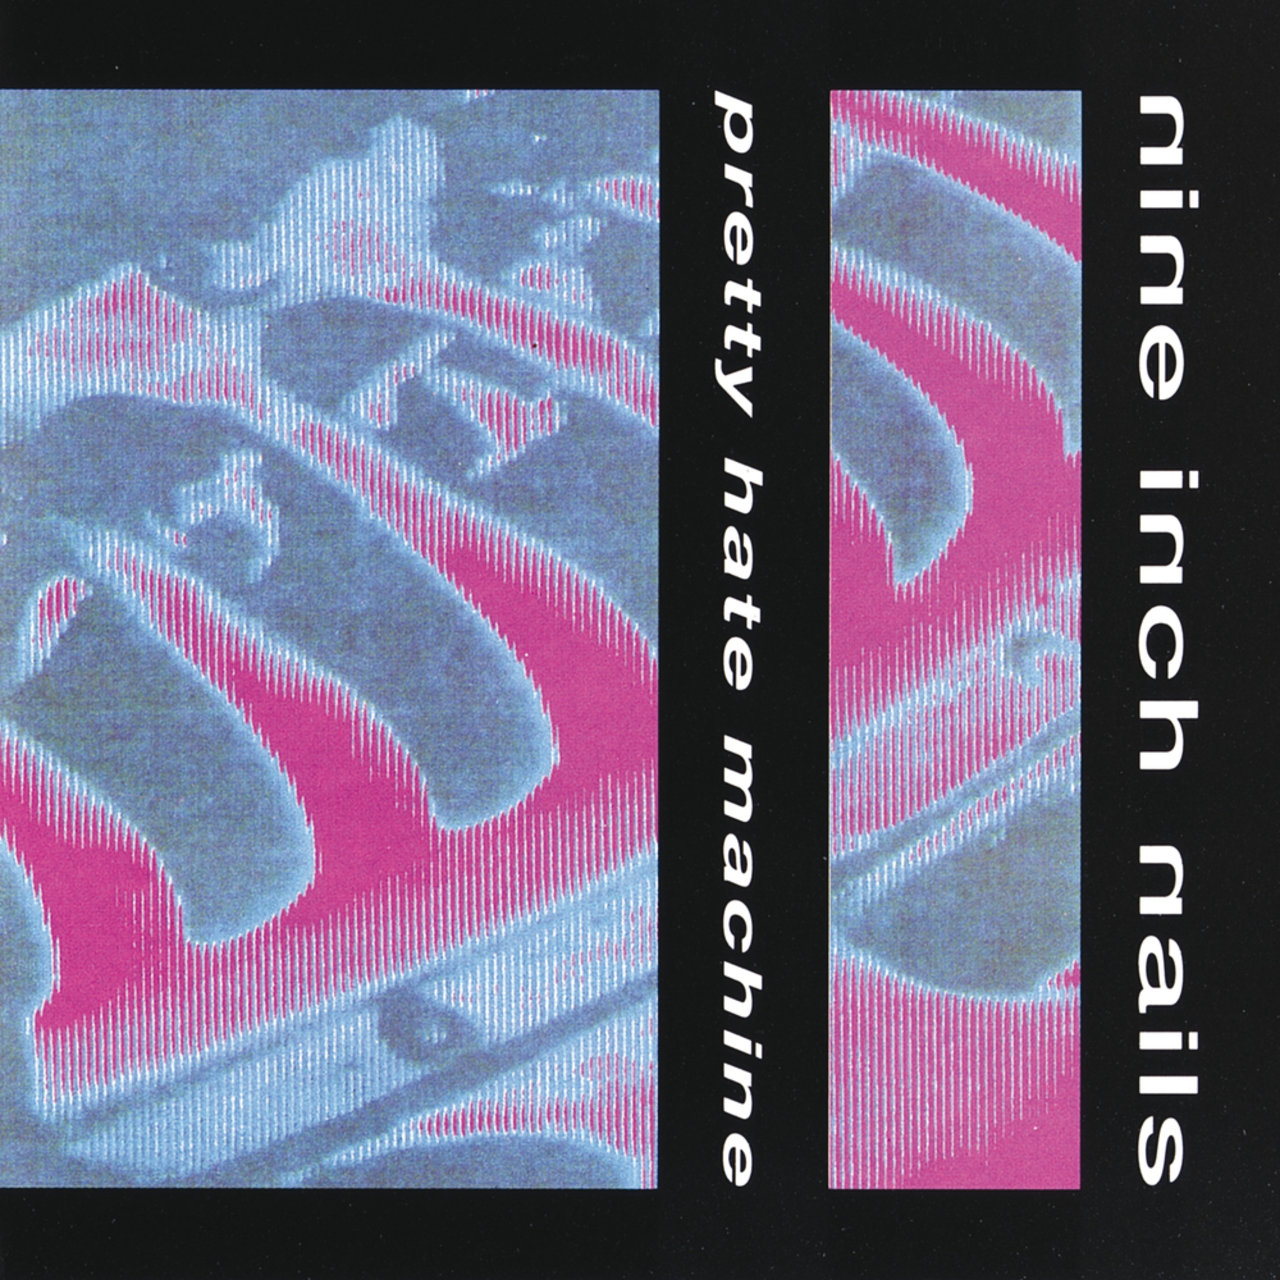 TIDAL: Listen to Head Like A Hole by Nine Inch Nails on TIDAL